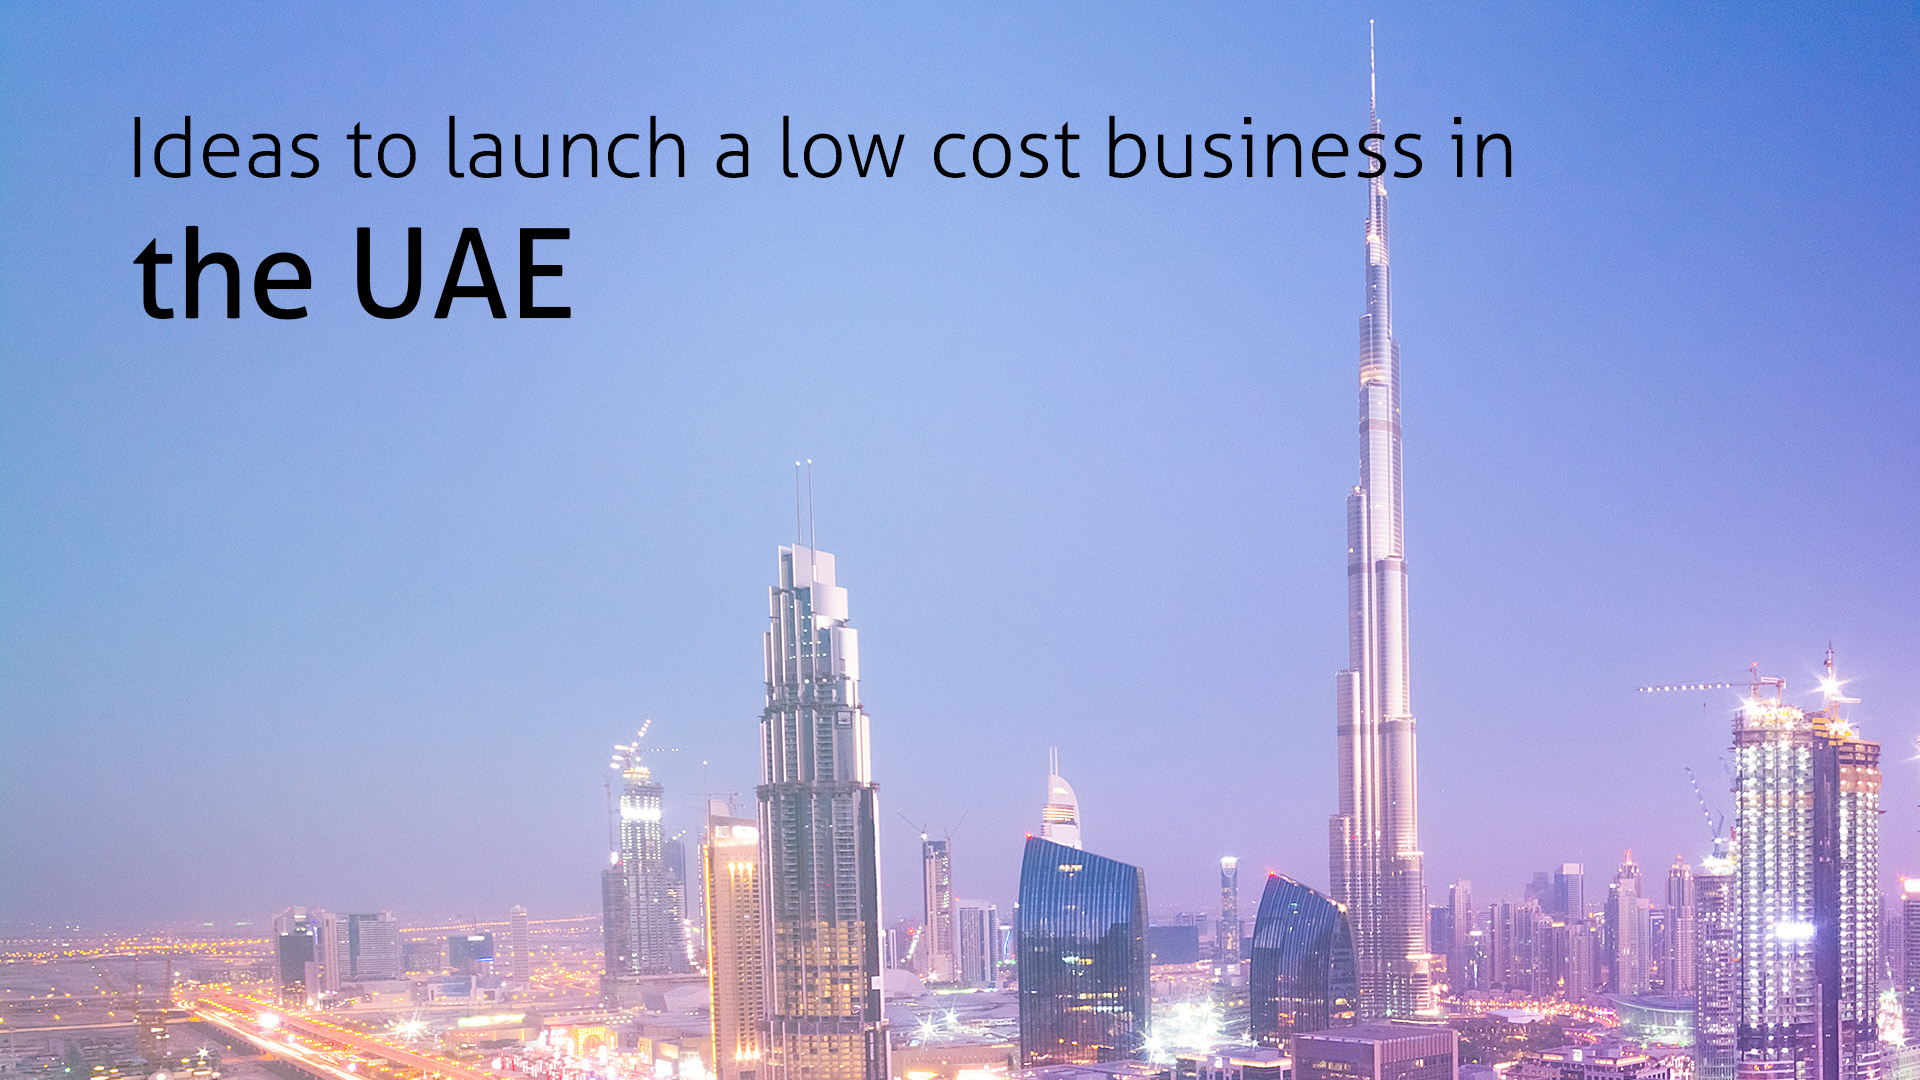 Ideas to launch a low cost business in the UAE